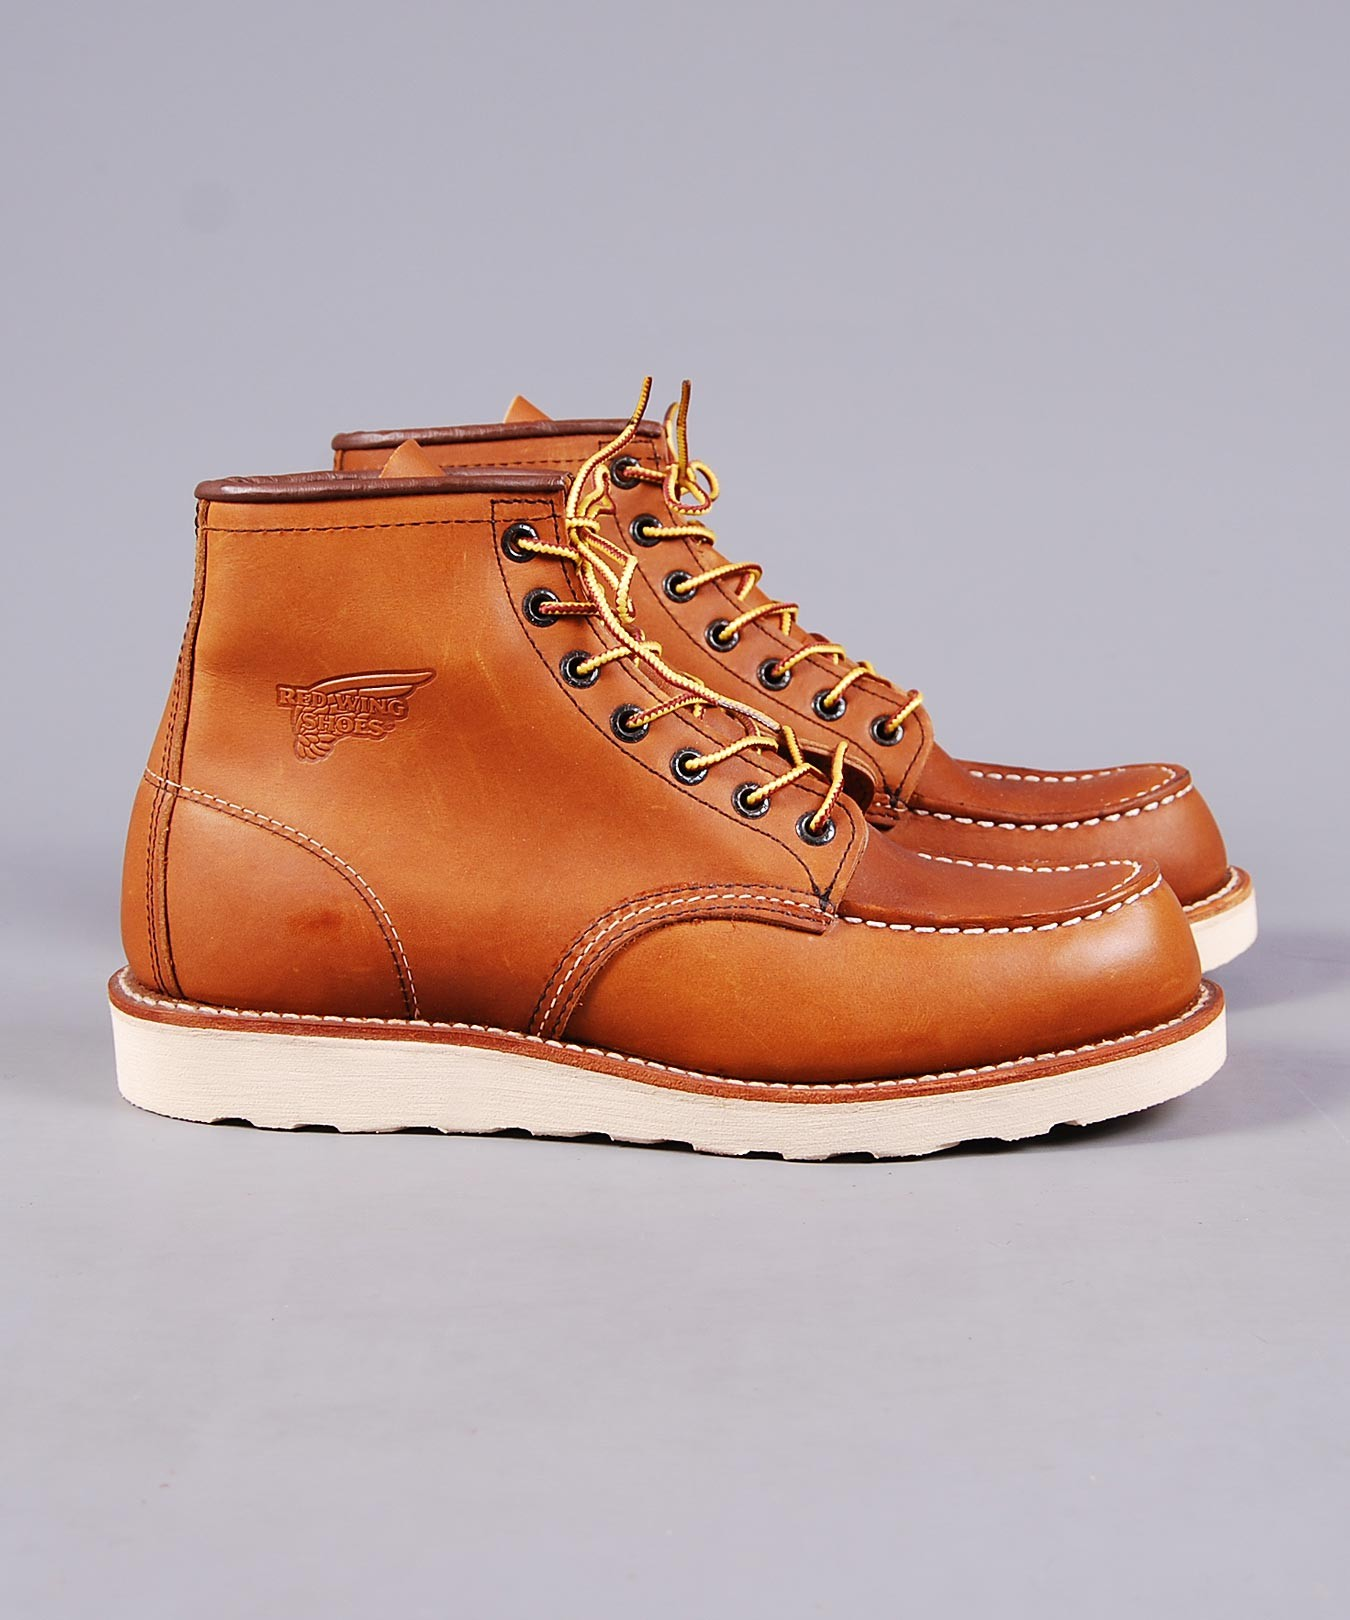 Red Wing Boots For Sale W14Tr7fe